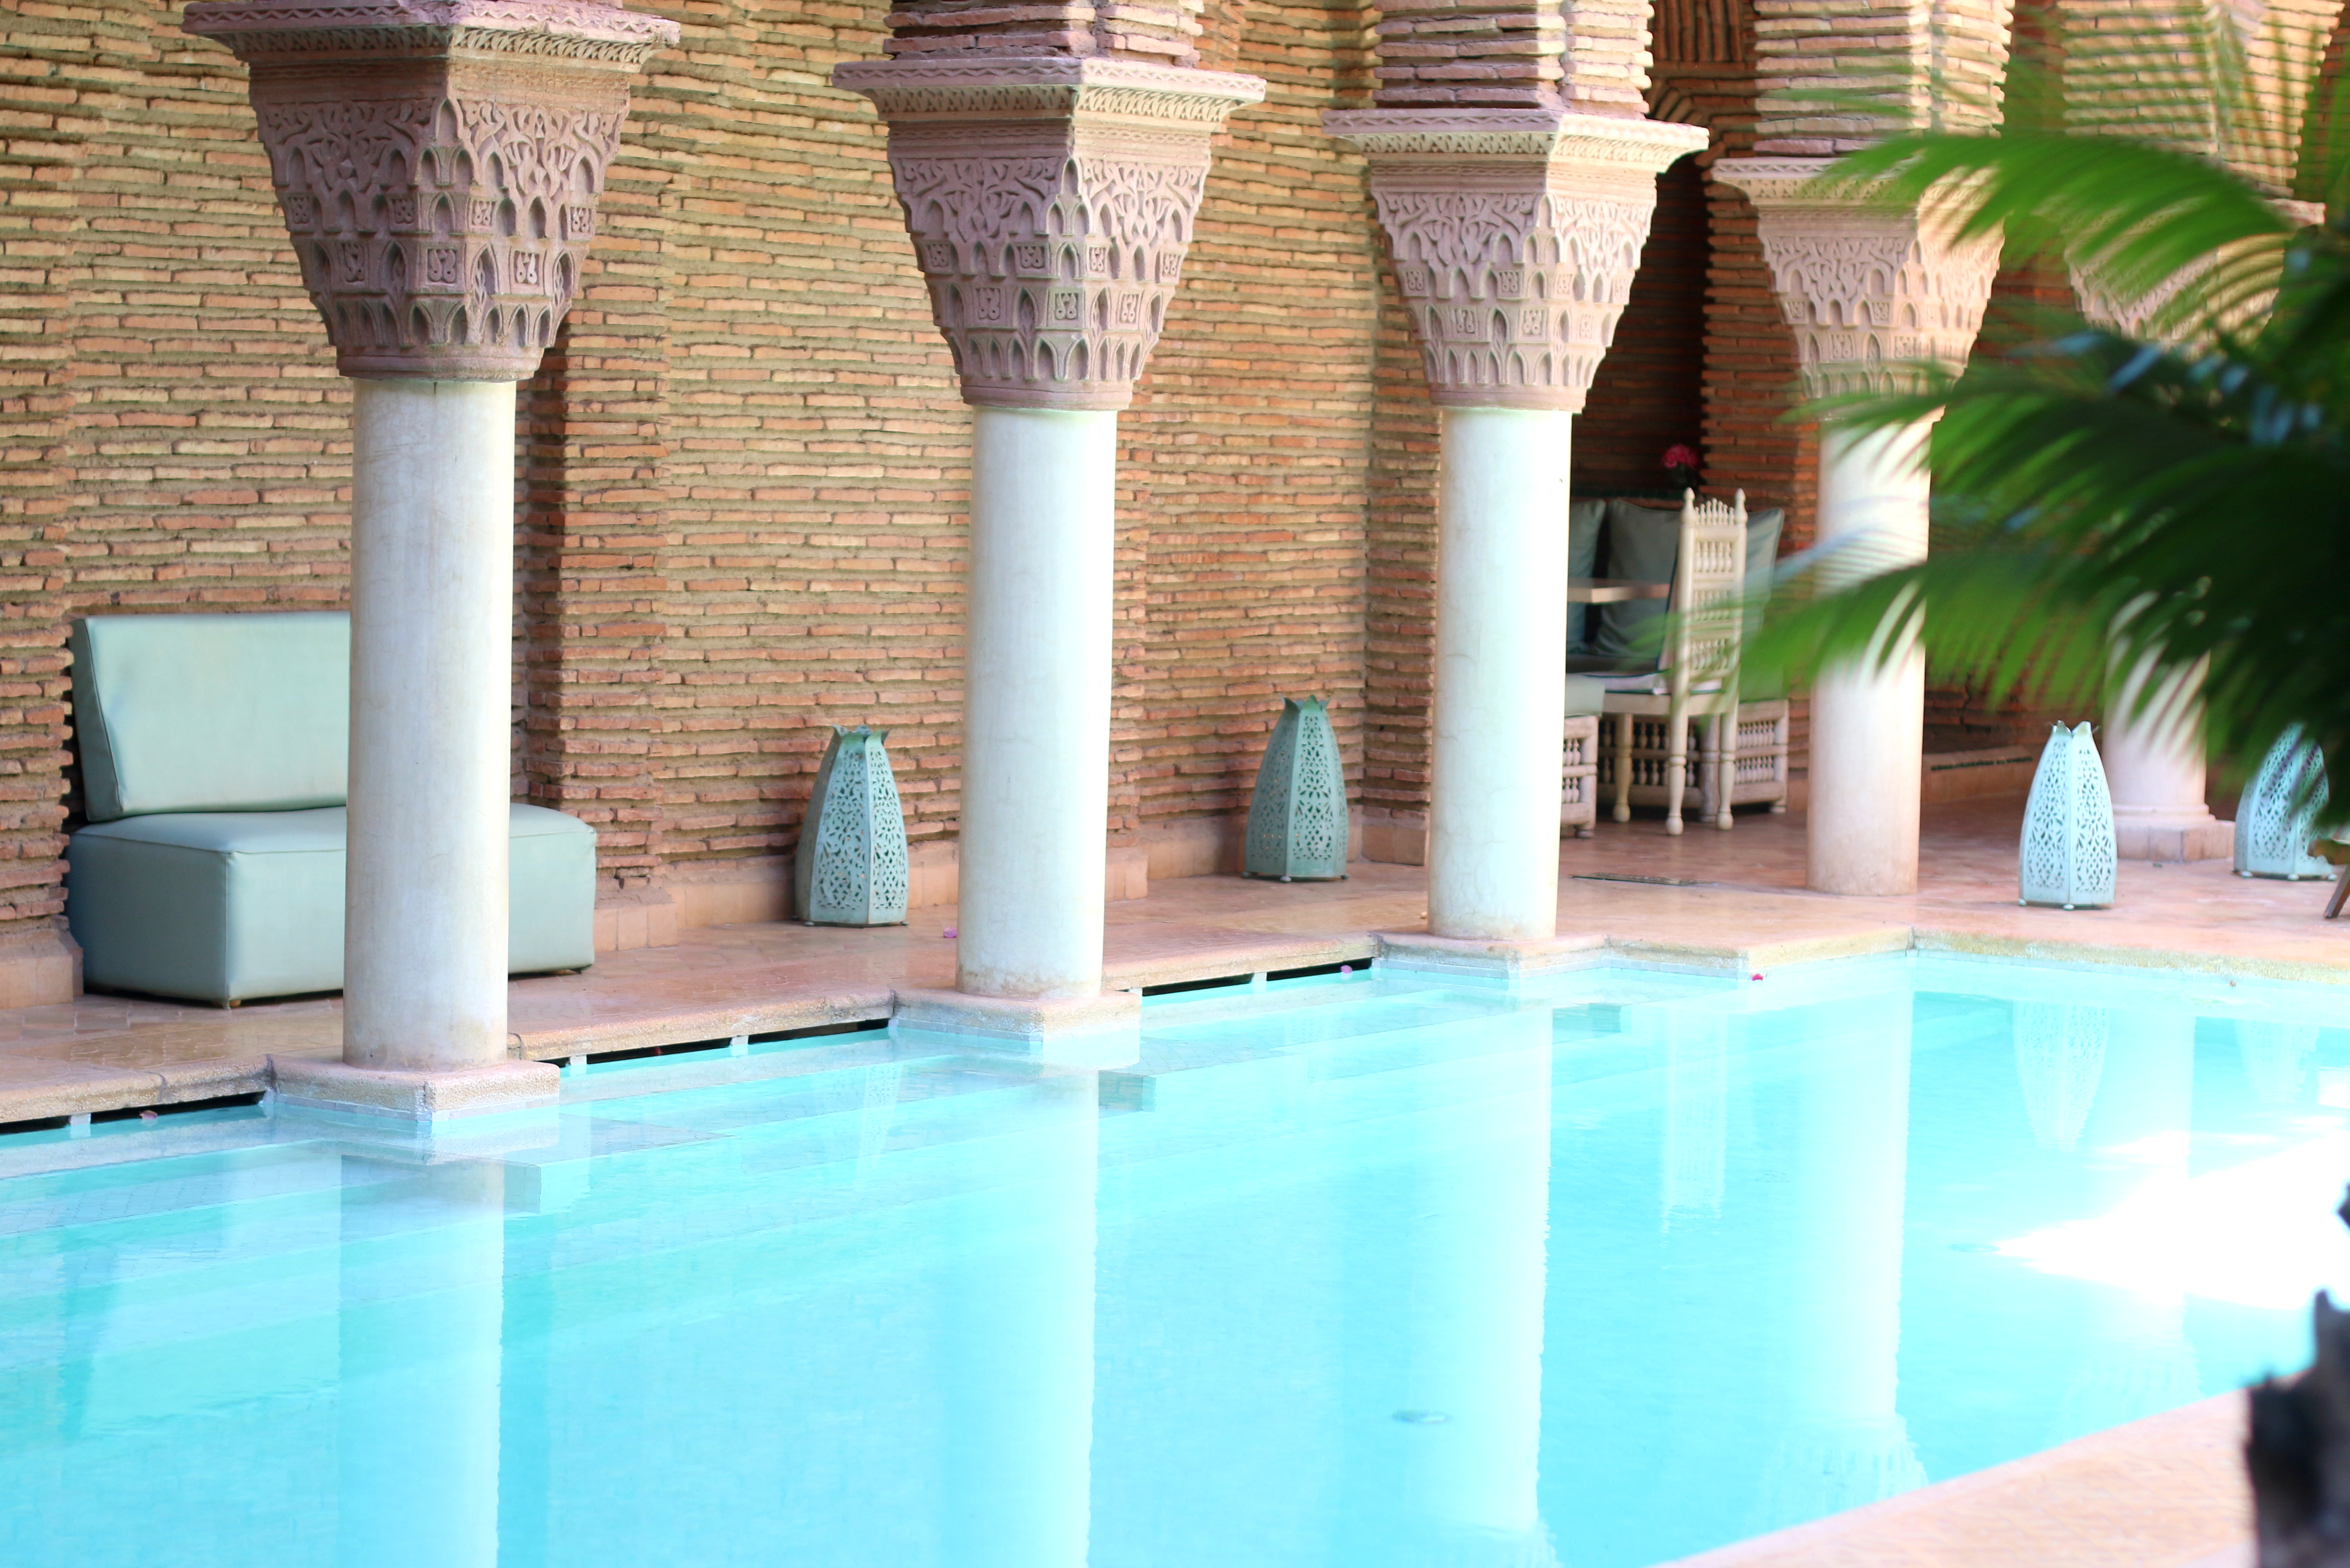 la sultana marrakech morocco hotel guide travel blog travel blogger hotel review